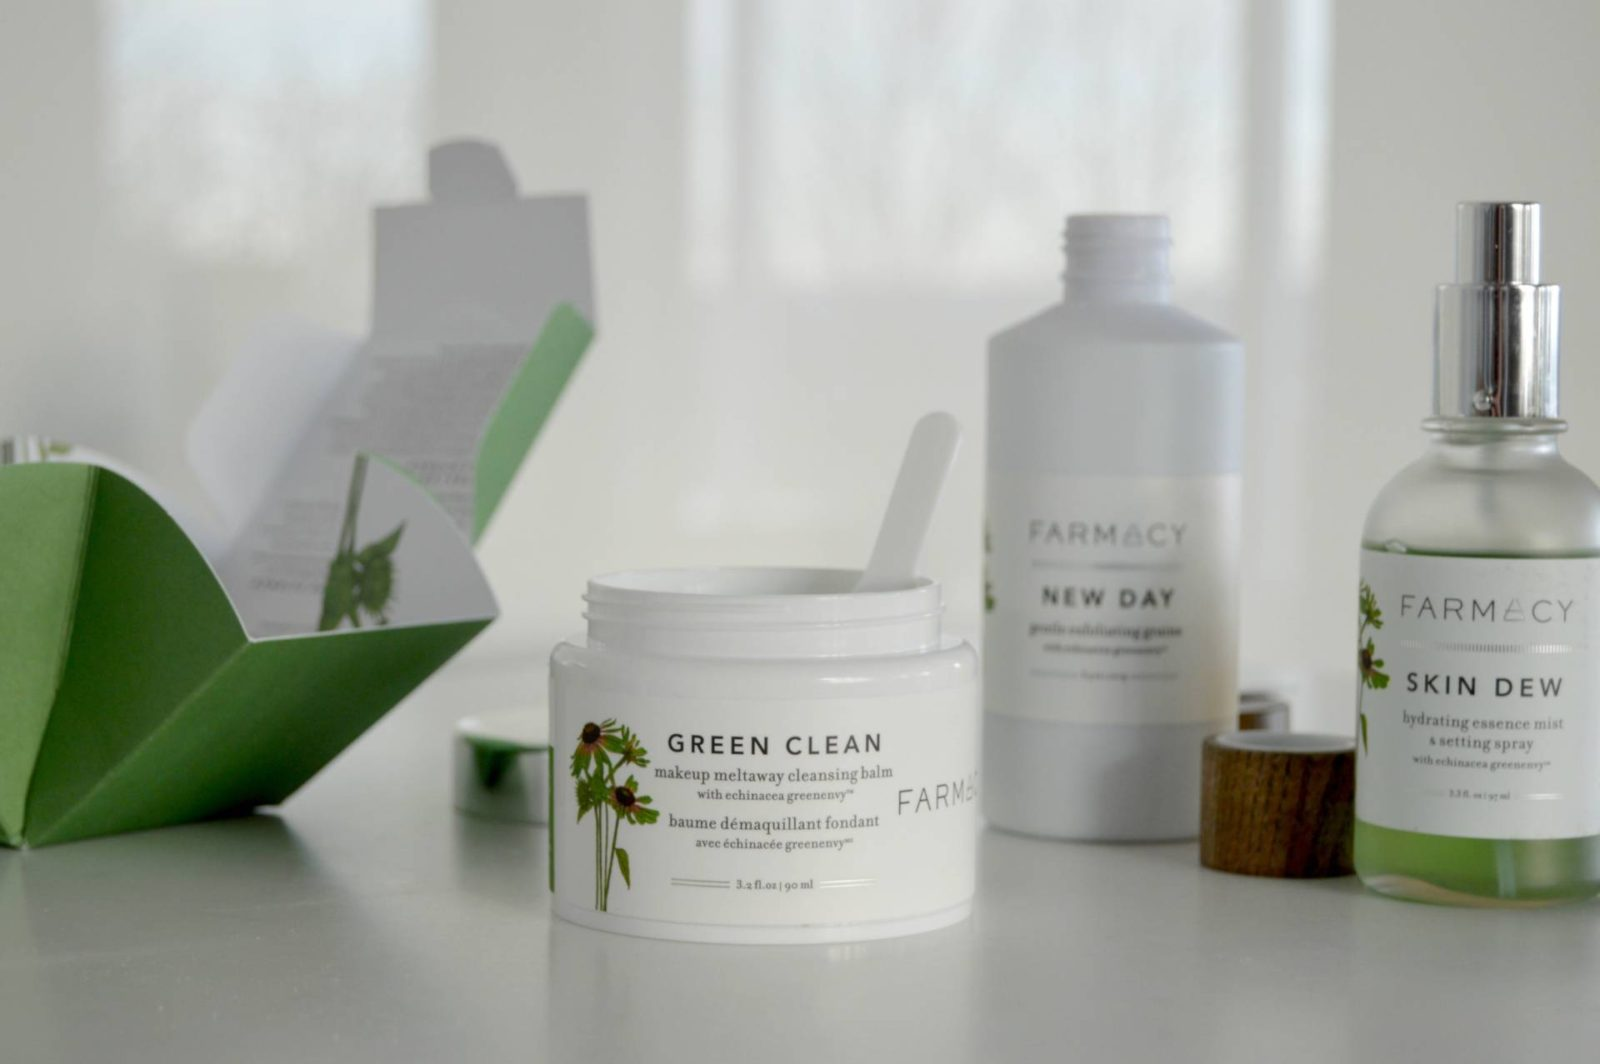 More Farmacy Newness: Green Clean Makeup Meltaway Cleansing Balm